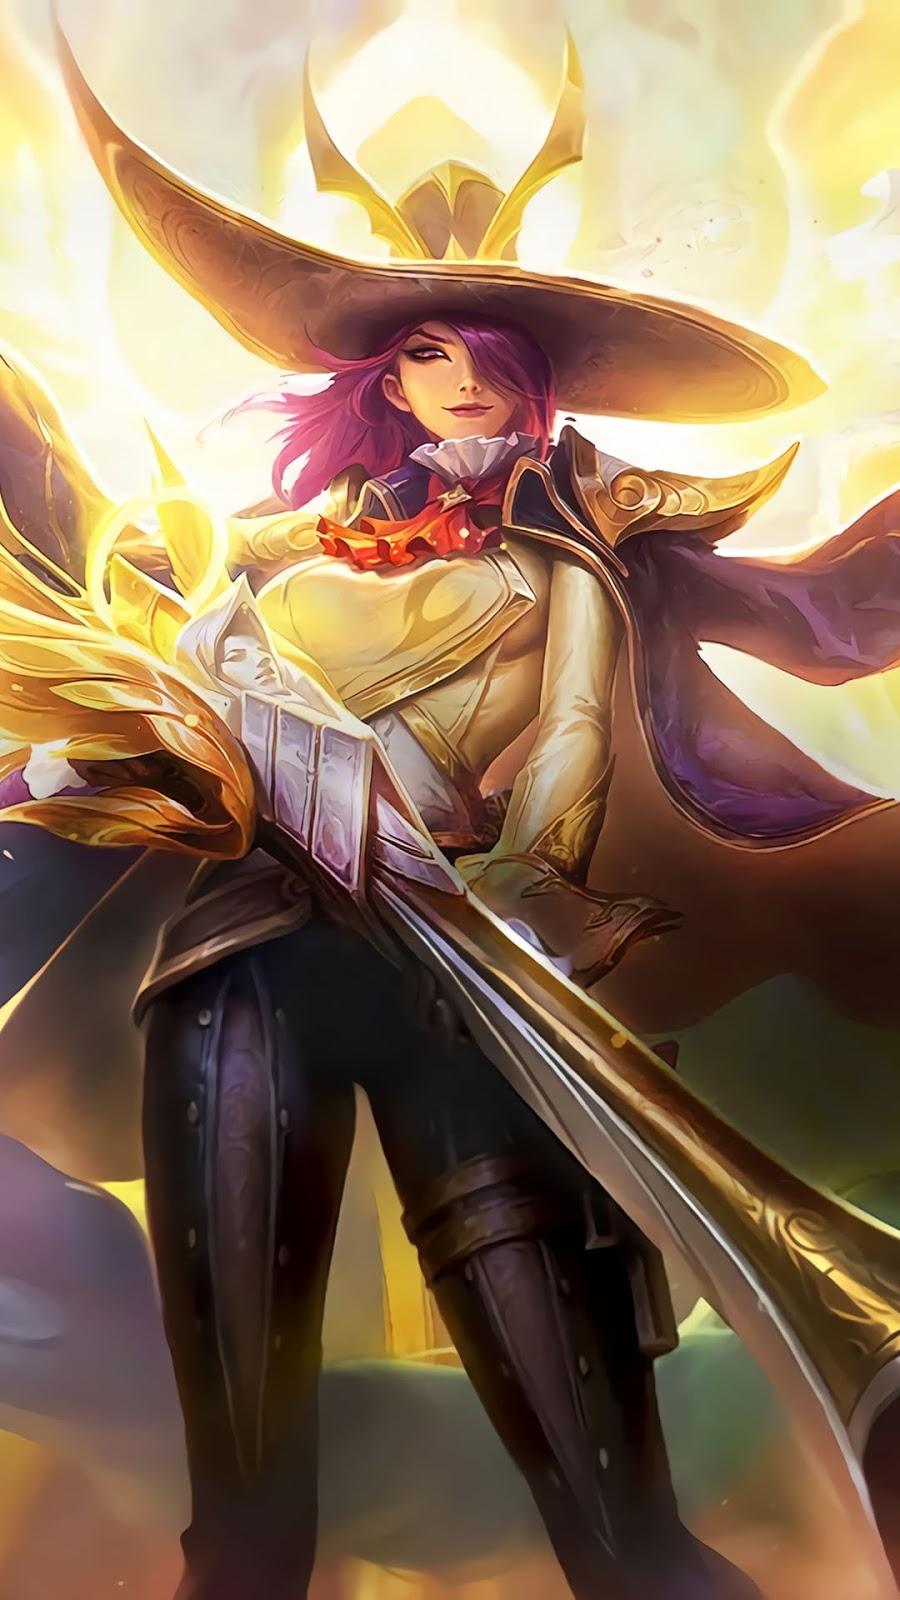 Wallpaper Lesley Angelic Agent Skin Mobile Legends HD for Android and iOS